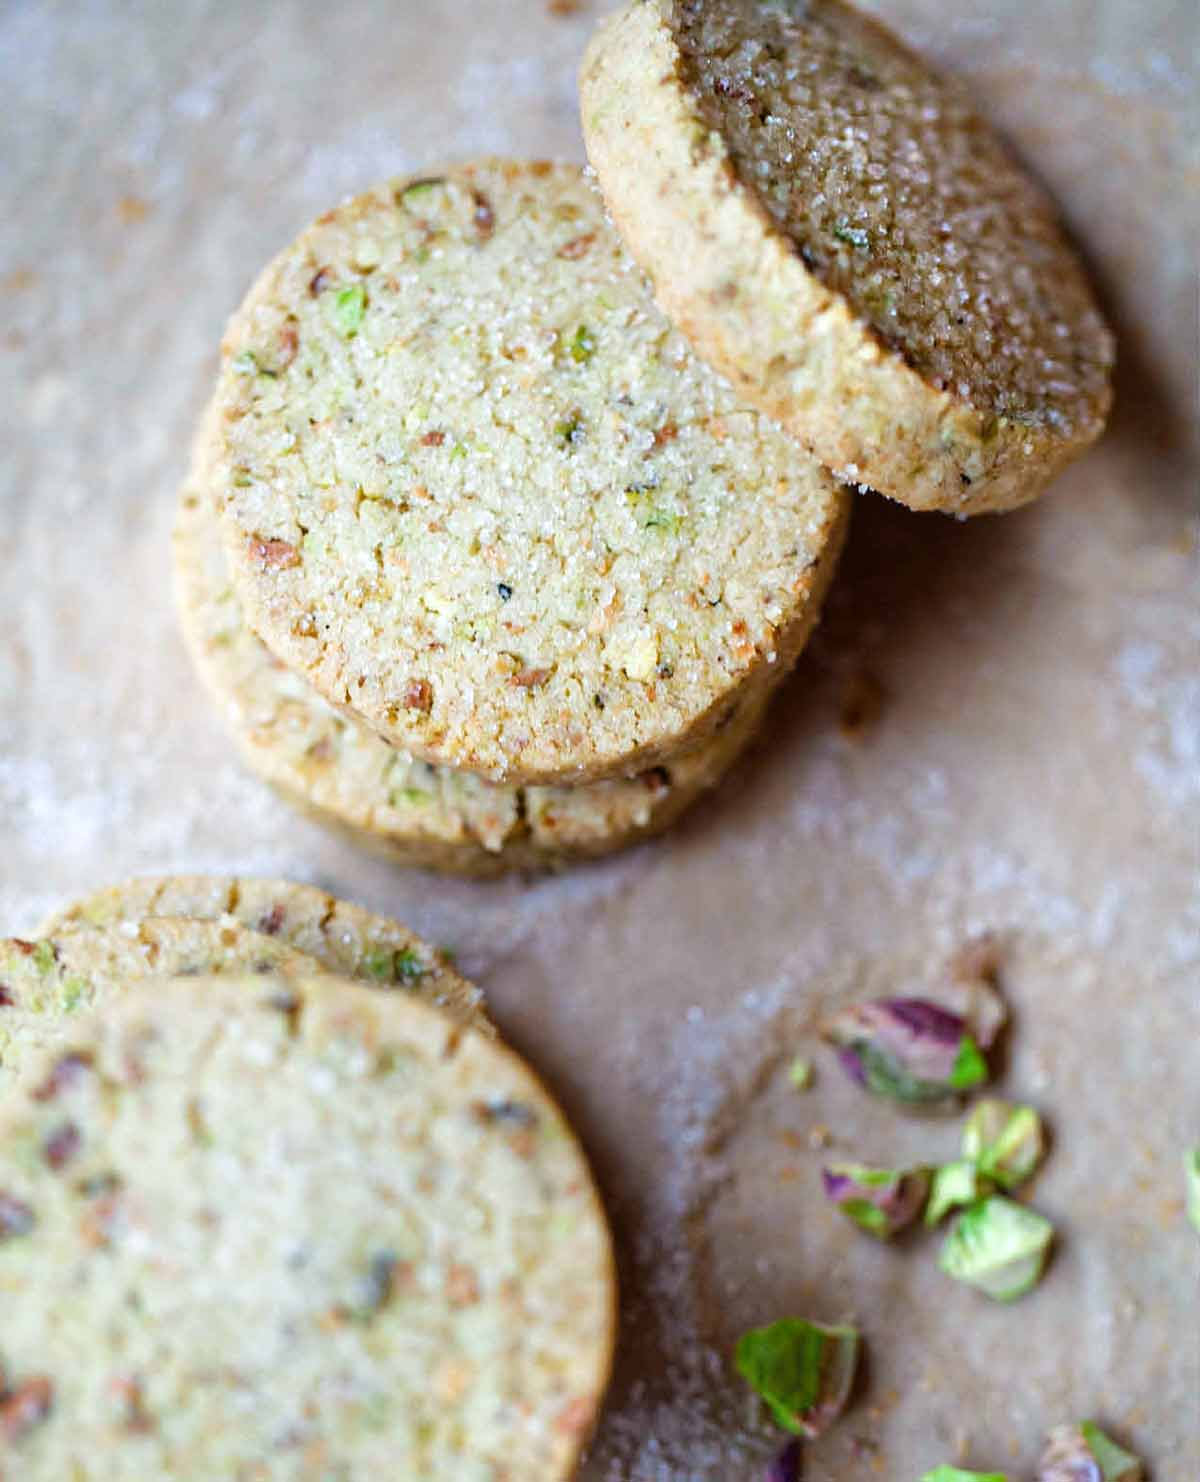 Five round pistachio shortbread cookies with a few broken pistachios on the side